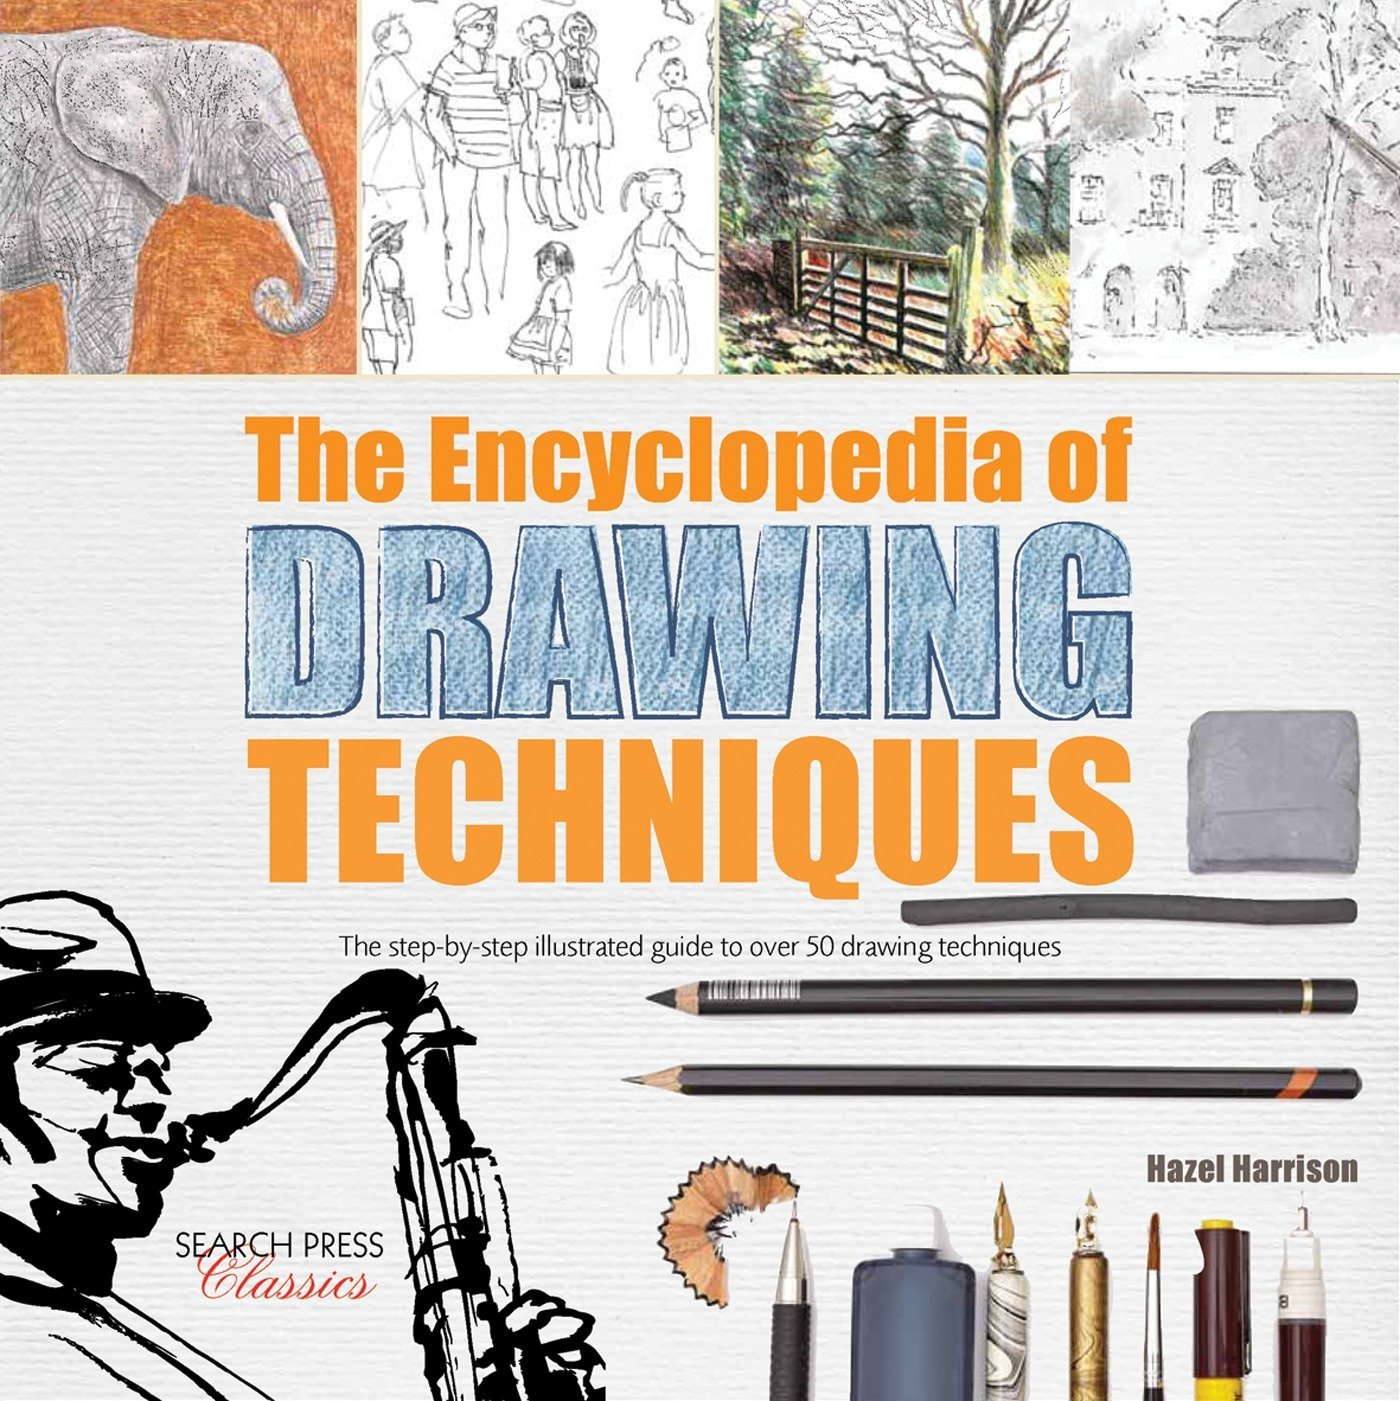 Encyclopedia of Drawing Techniques, The: The step-by-step illustrated guide to over 50 techniques ebook